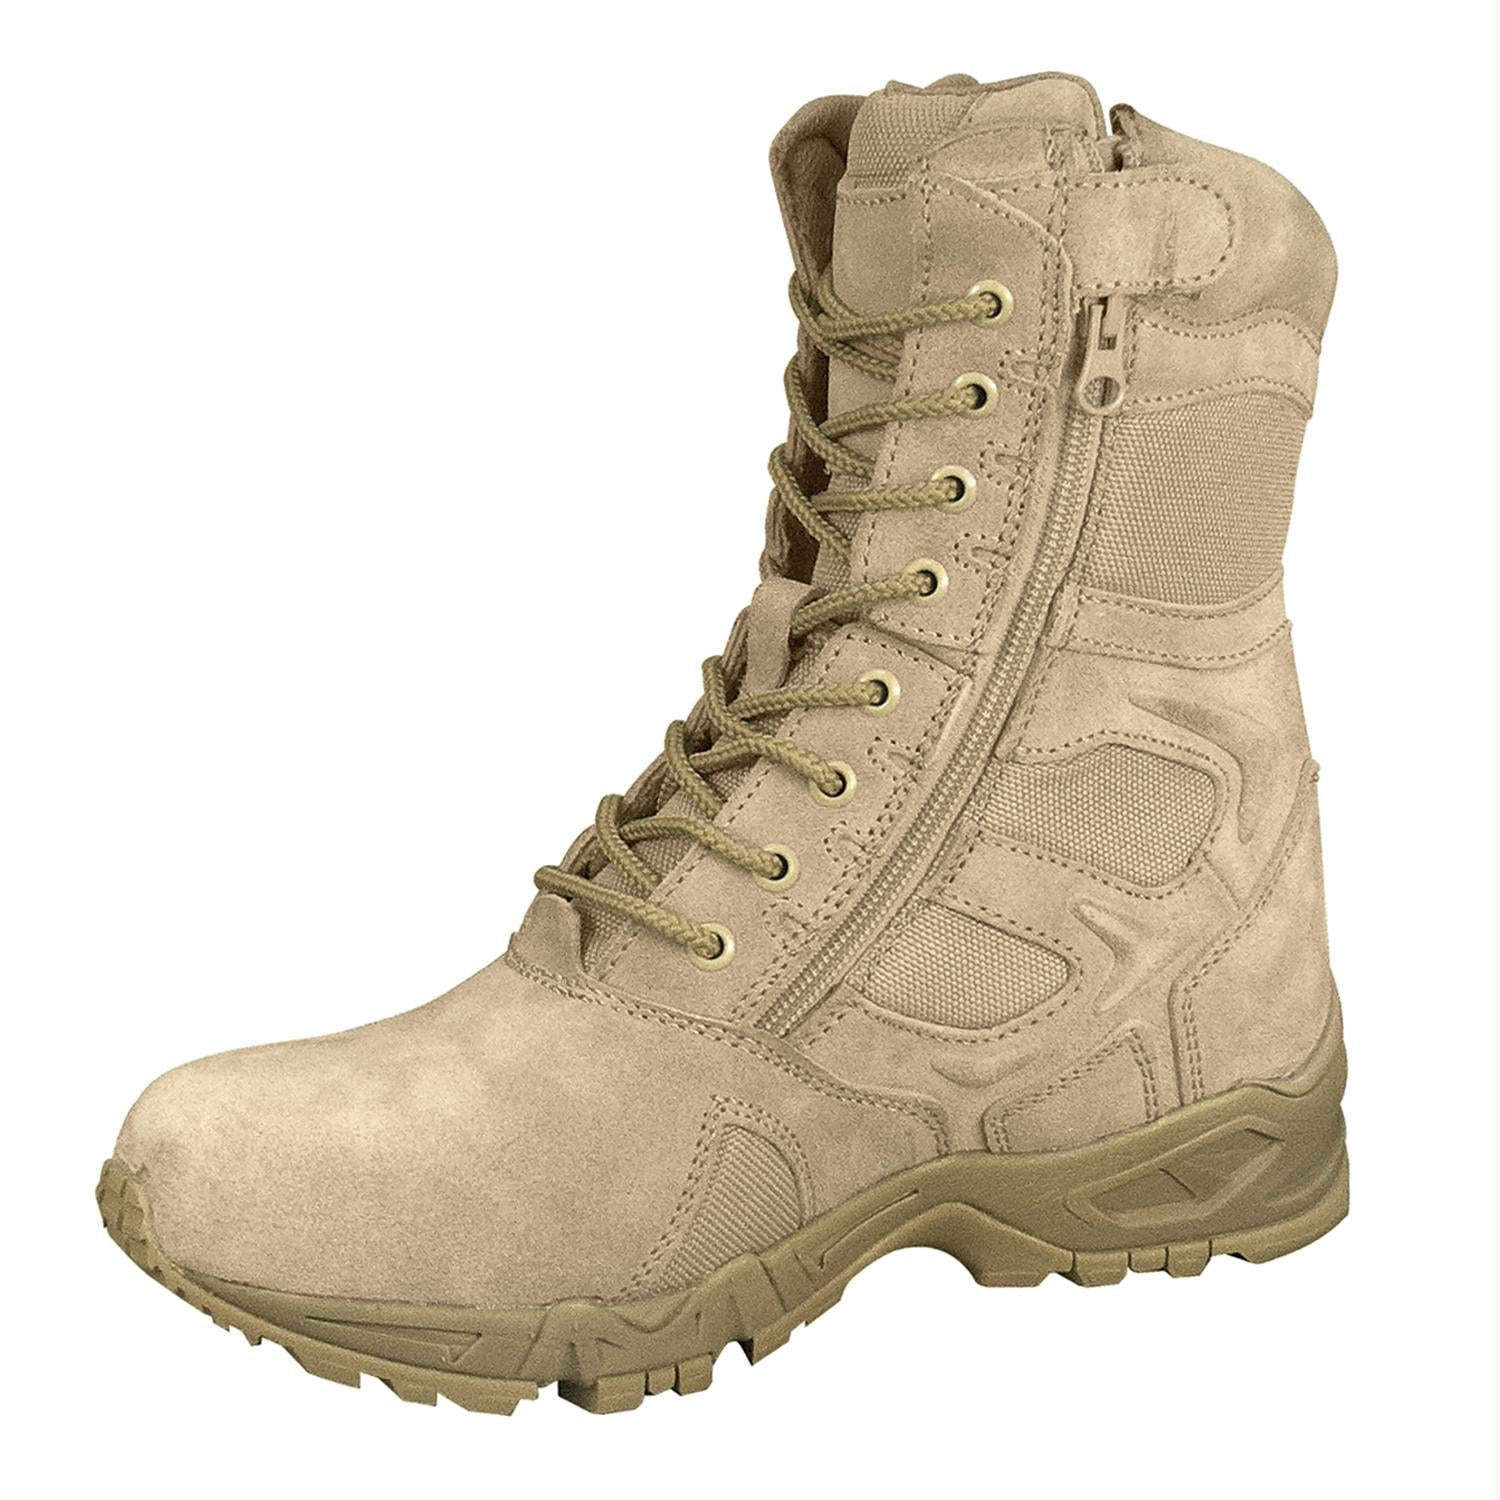 Rothco Forced Entry Desert Tan 8